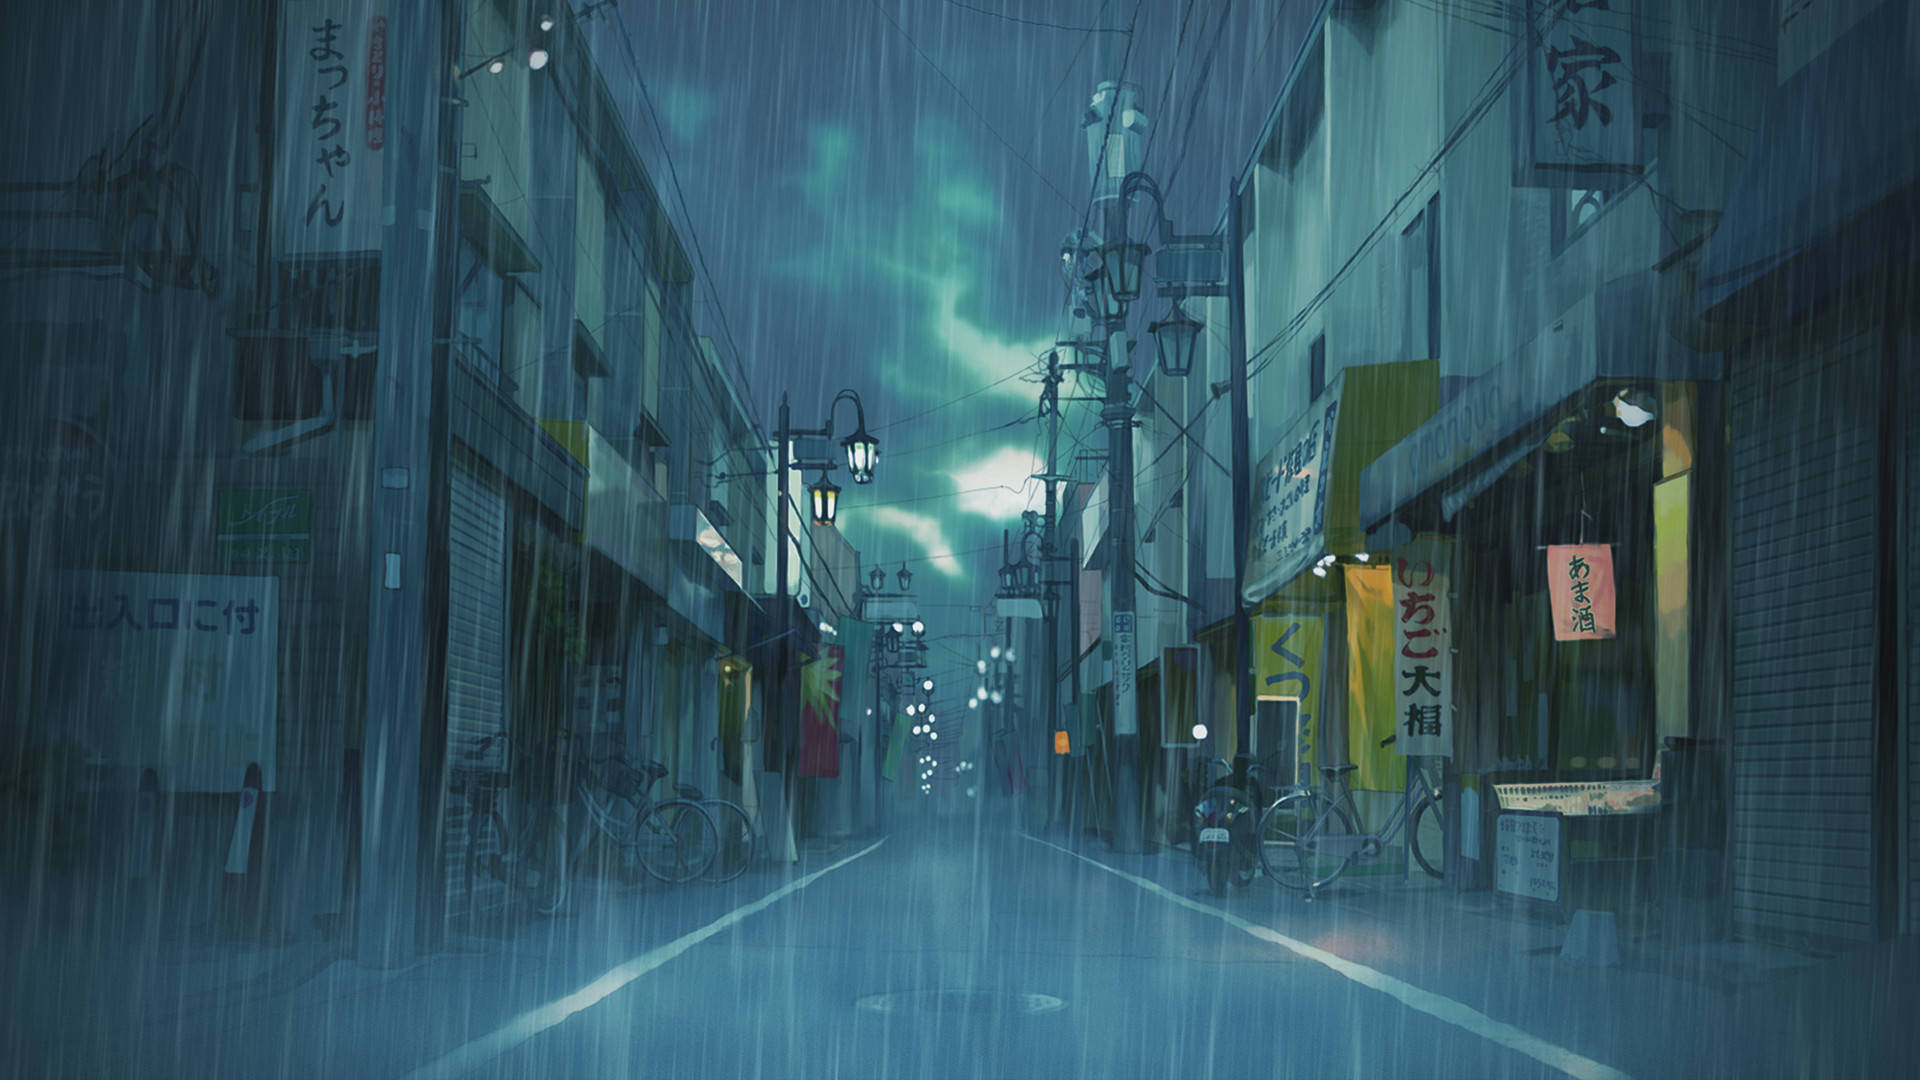 Japan rain wallpapers top free japan rain backgrounds - Anime rain wallpaper ...